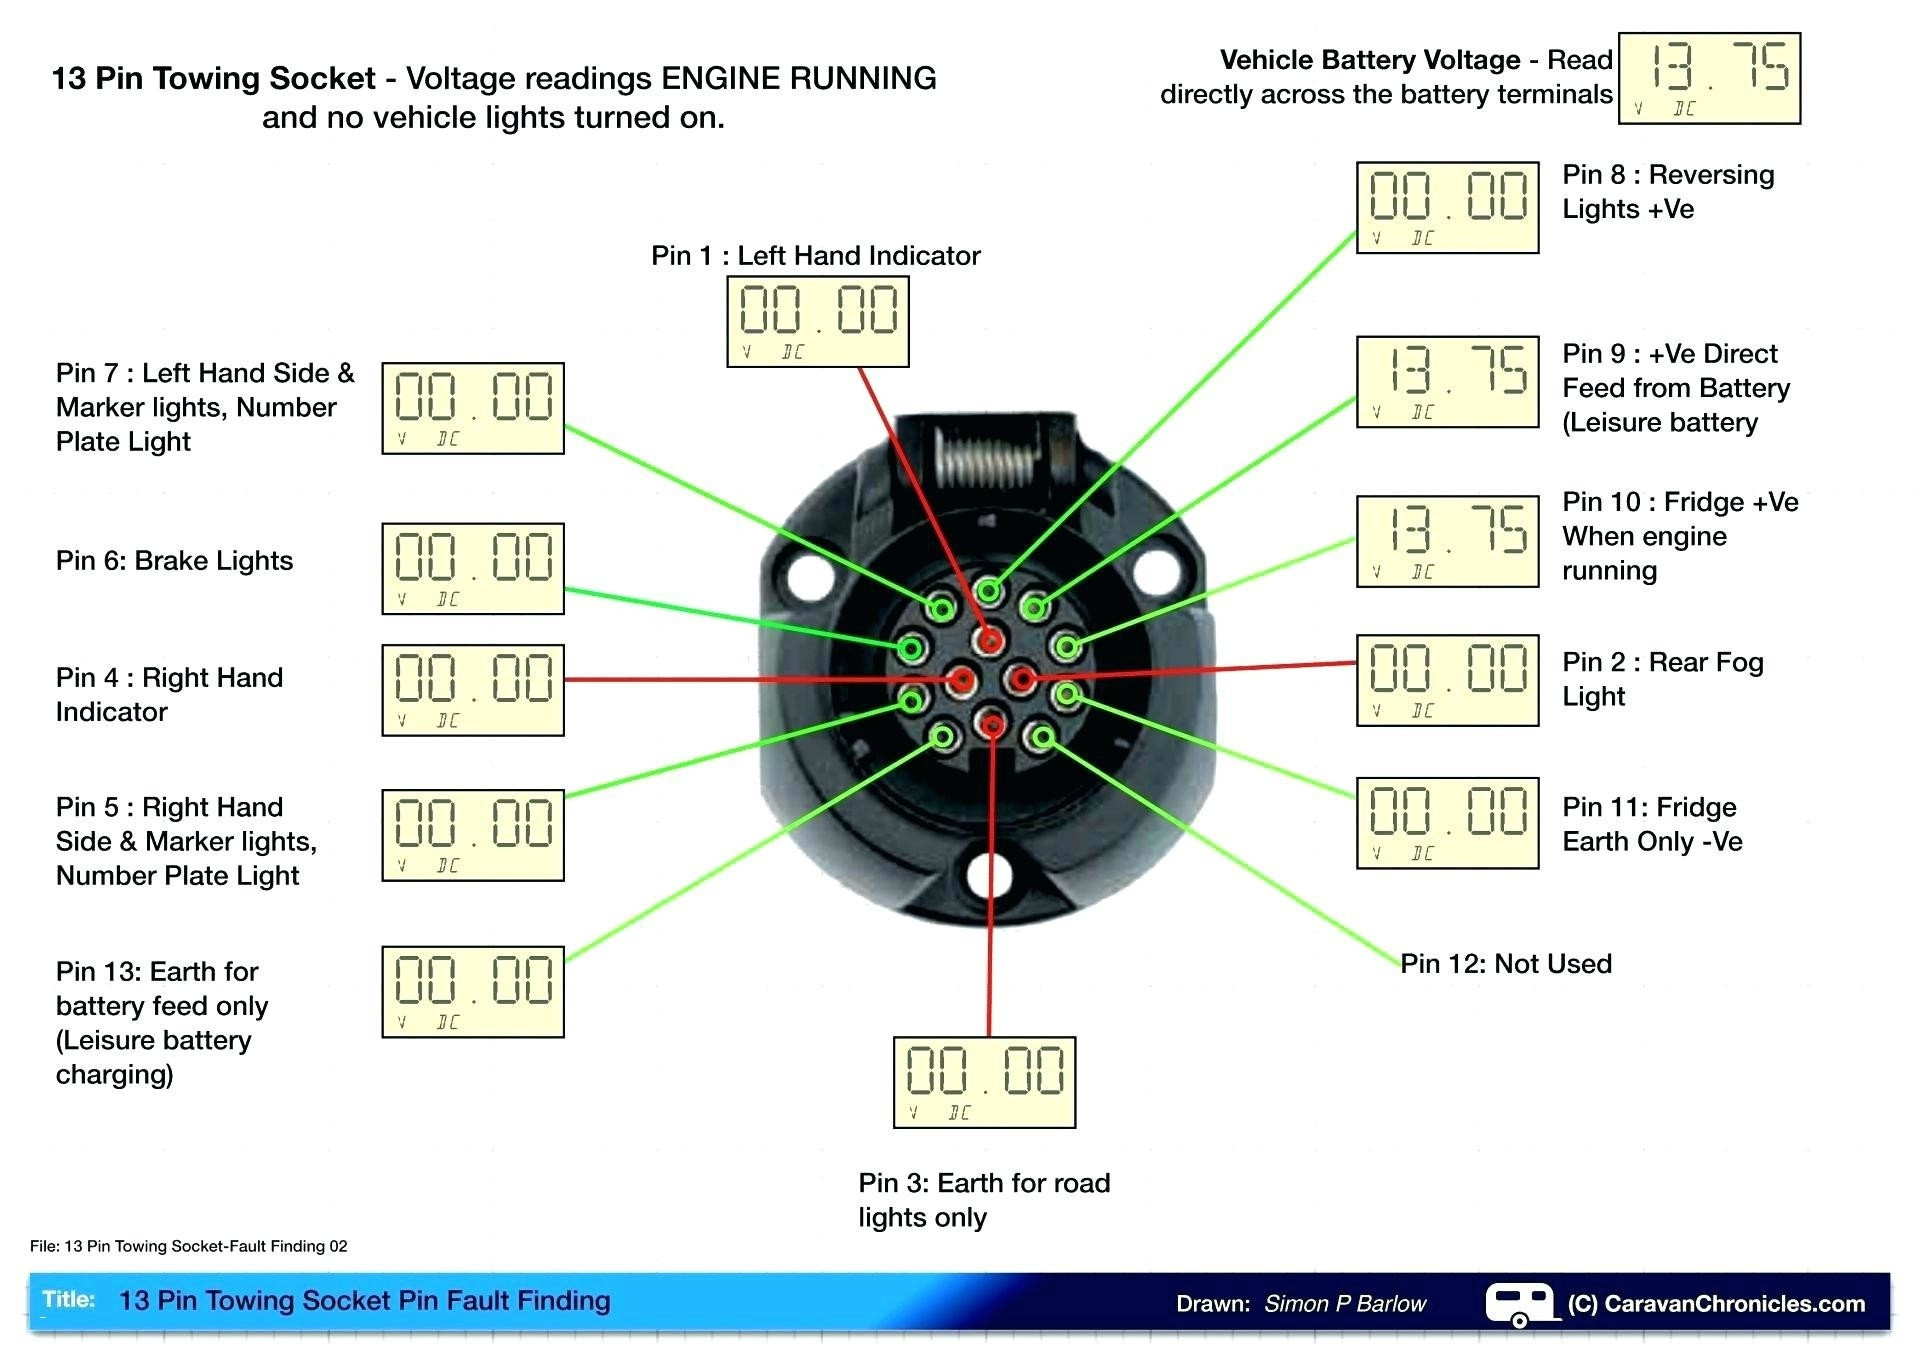 Round 4 Wire Trailer Plug Diagram Electrical Circuit Wiring Diagram - 4 Round Trailer Wiring Diagram